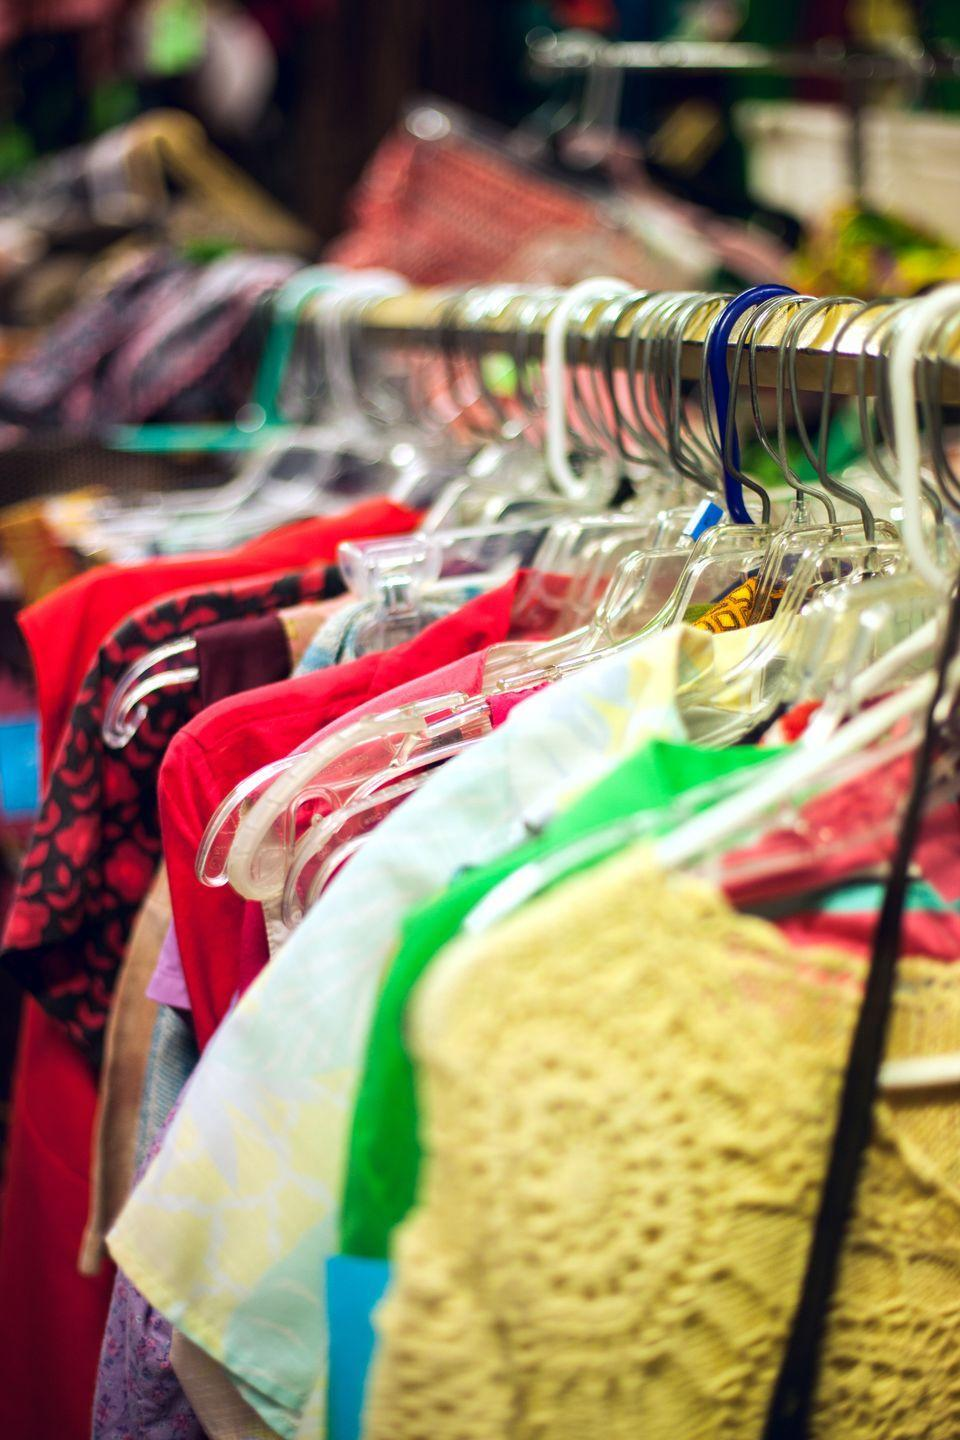 <p>It's new to you! Buying used items, whether it's clothes or equipment, can reduce waste (packaging materials) and your spending. What's not to like?</p>